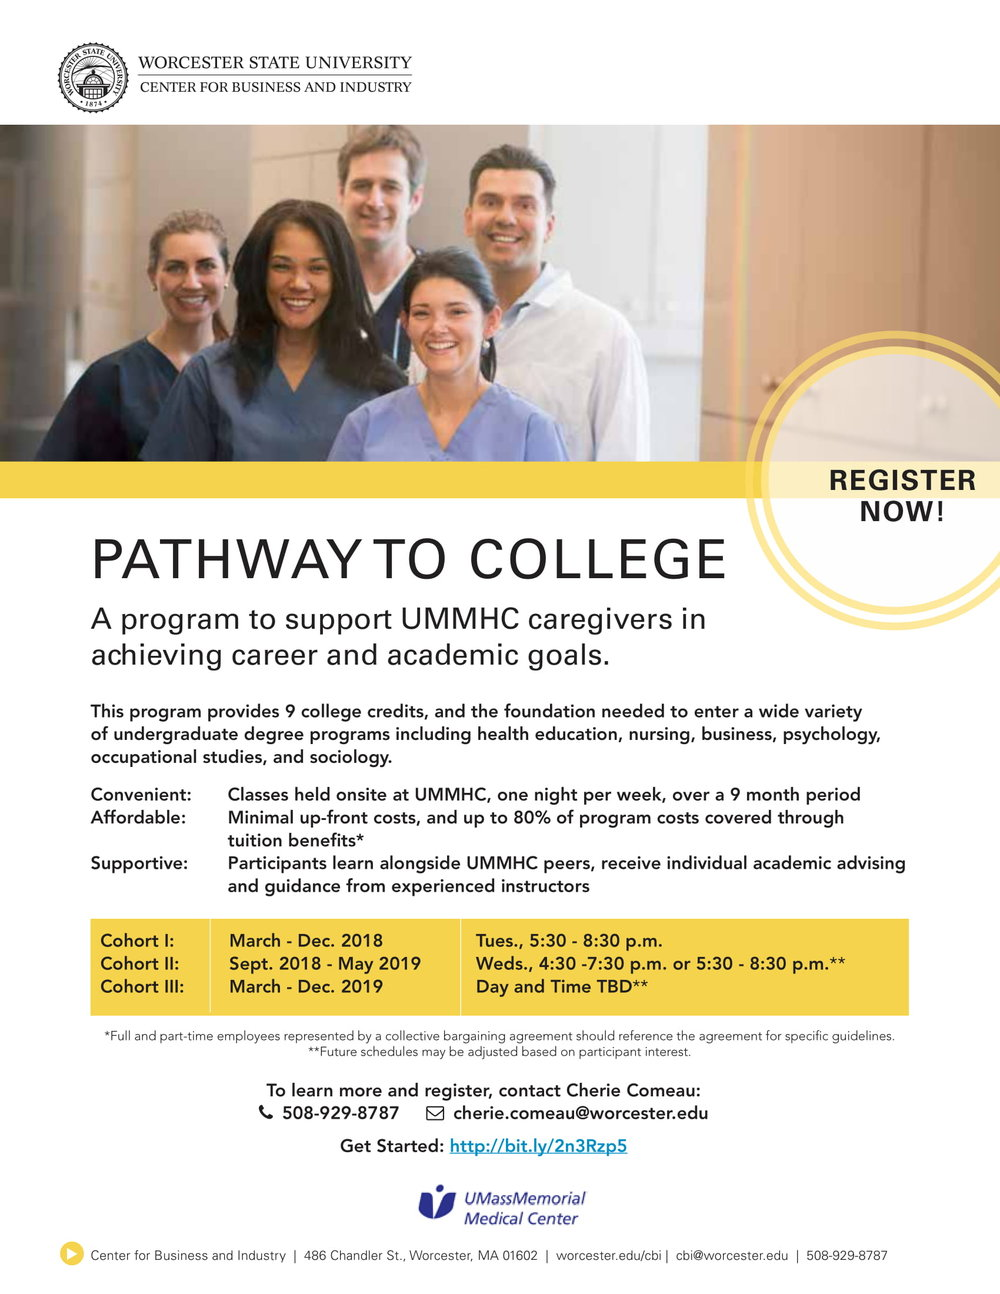 Pathway to College Flyer FINAL-1.jpg